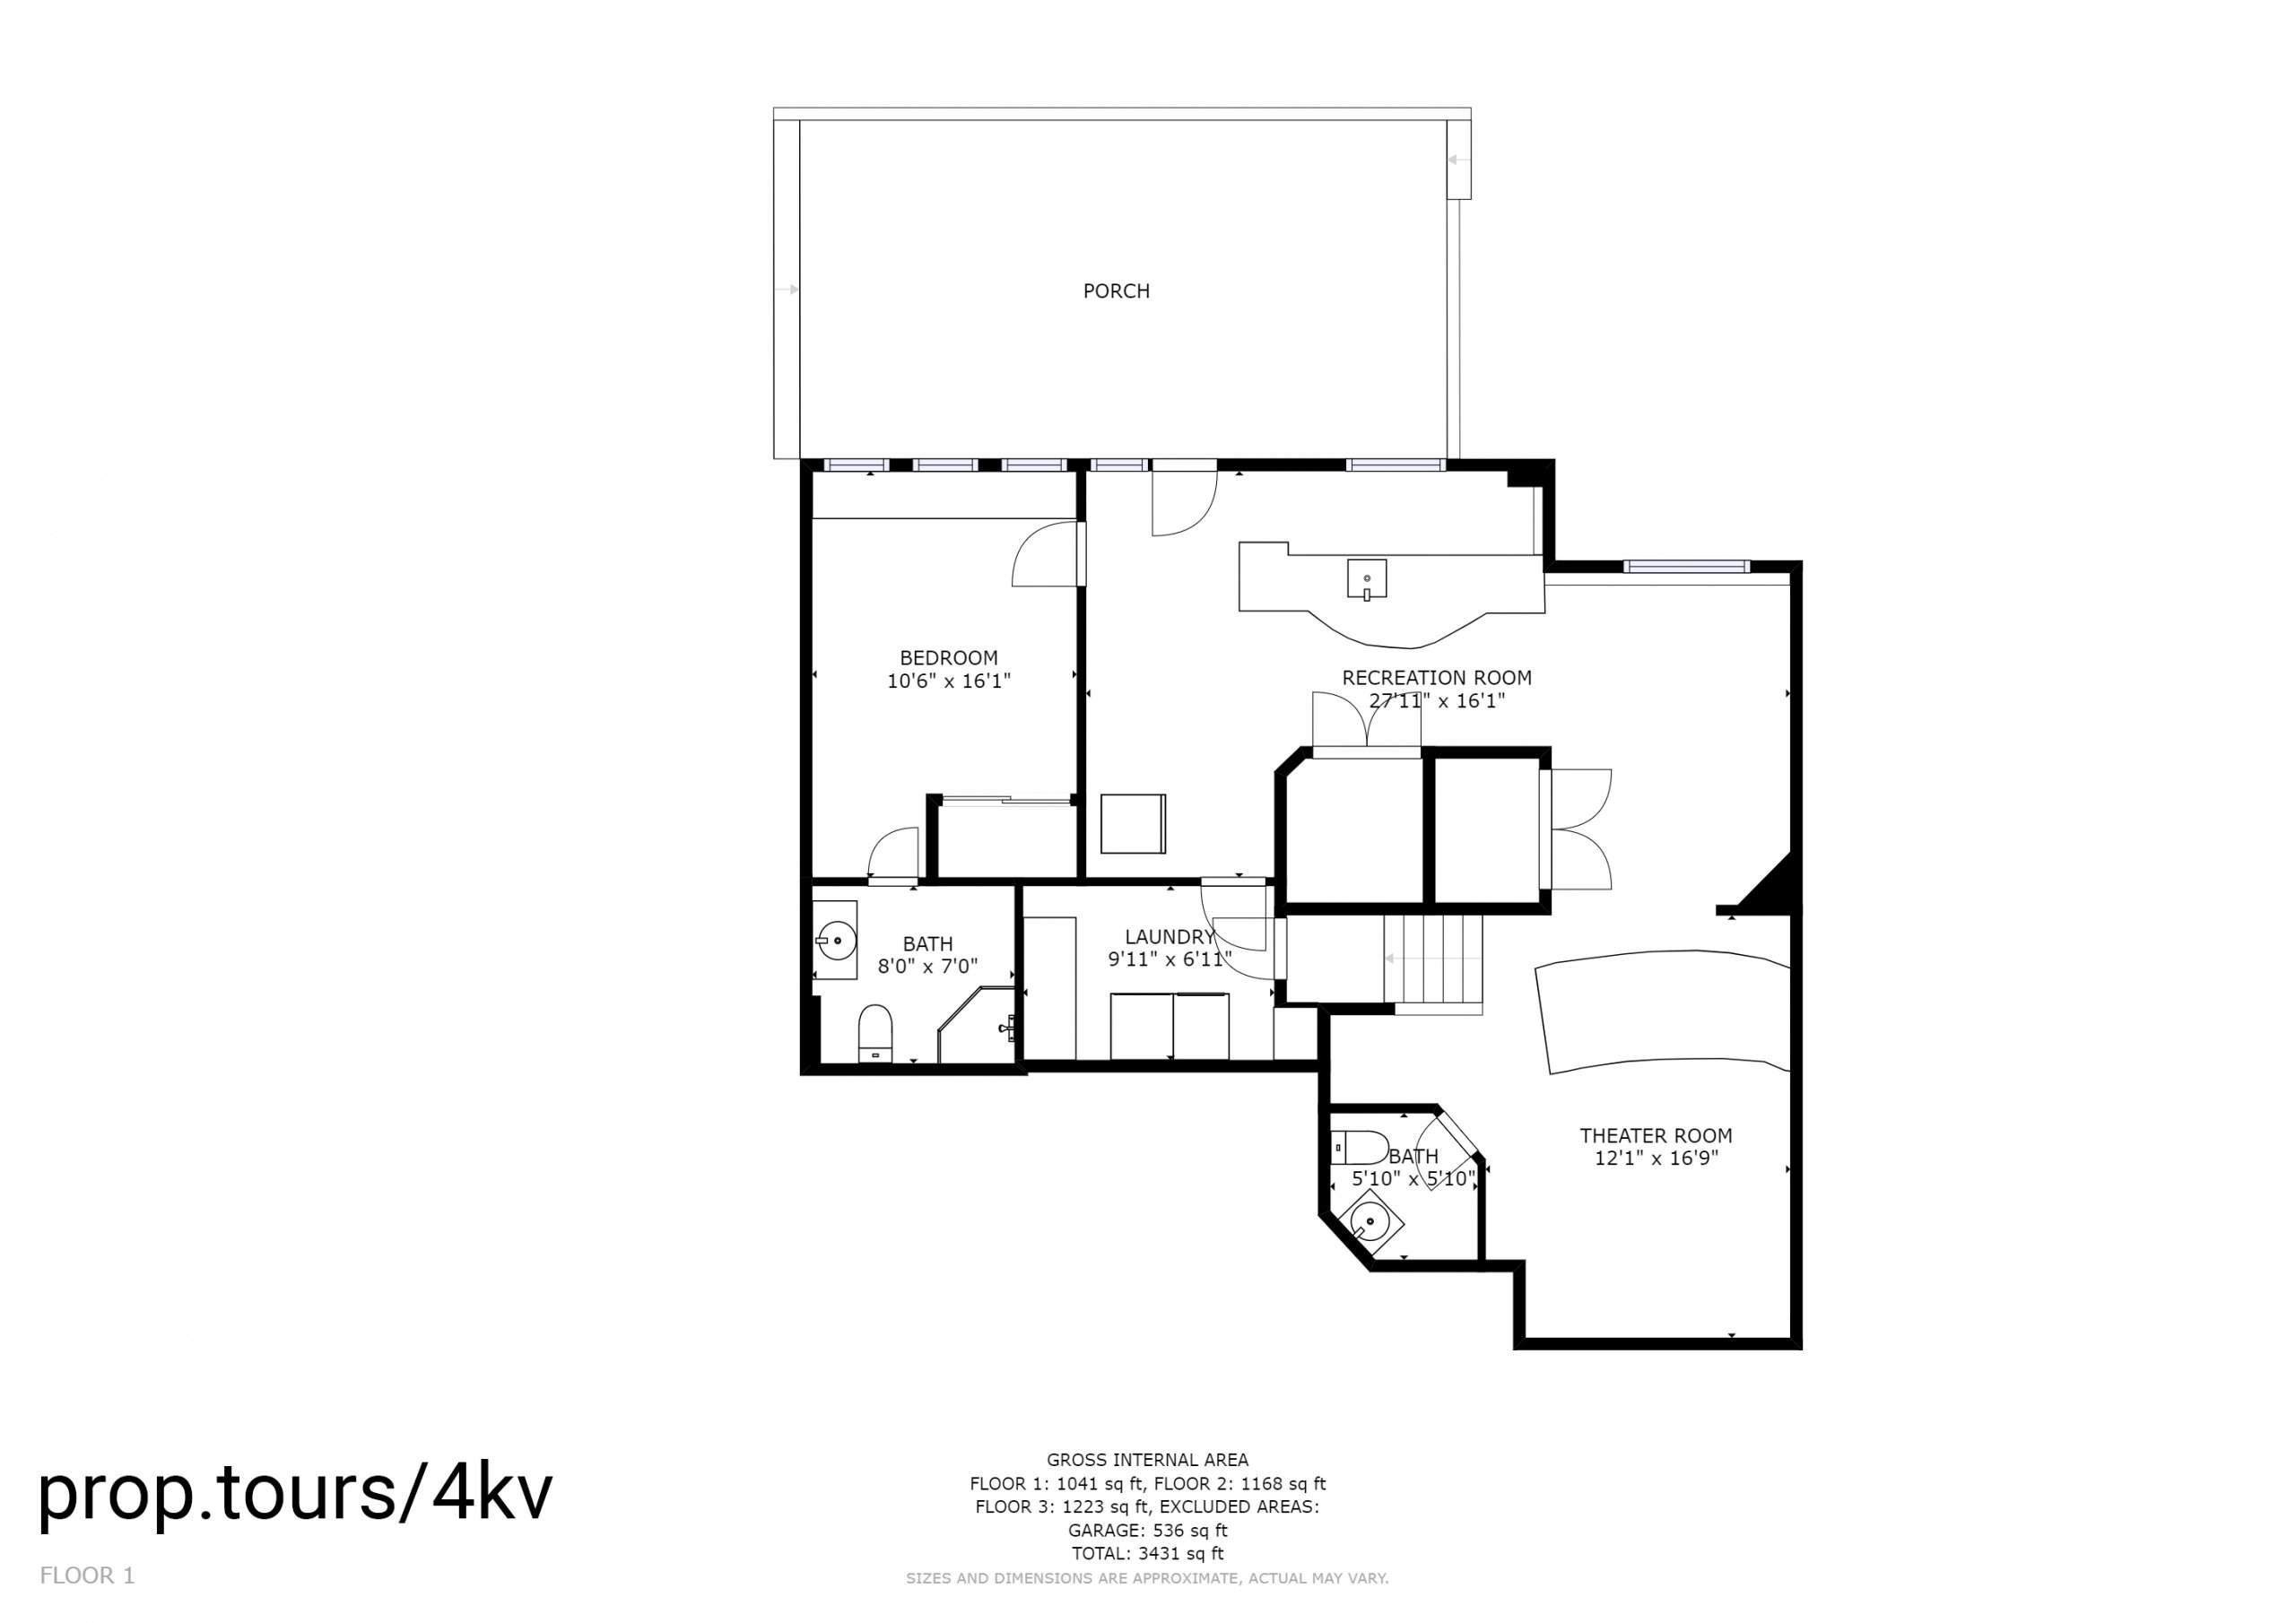 Floor Plan of Basement With Measurements